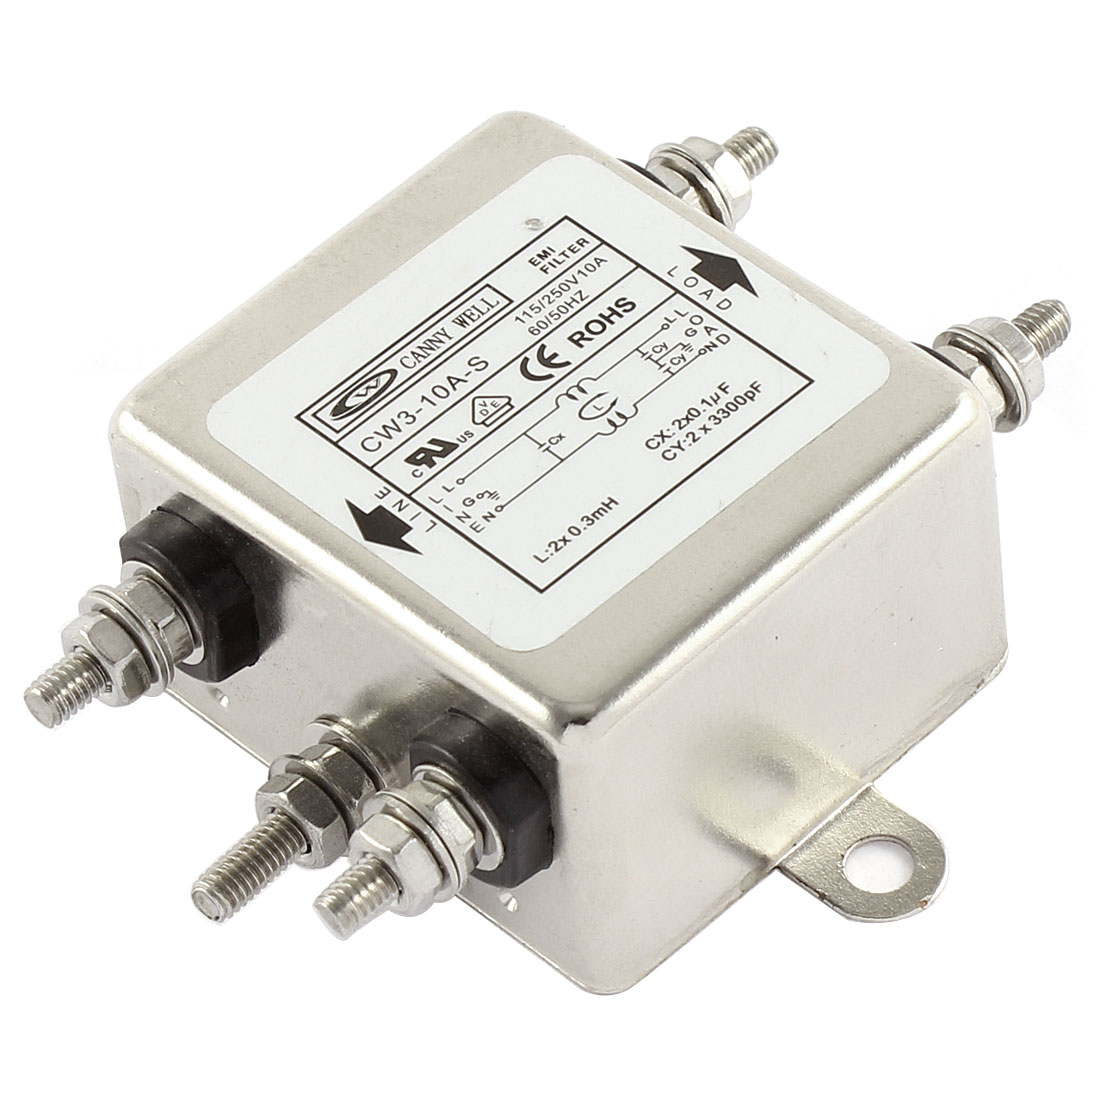 AC 115/250V 10A CW3-10A-S Noise Suppressor Power EMI Filter